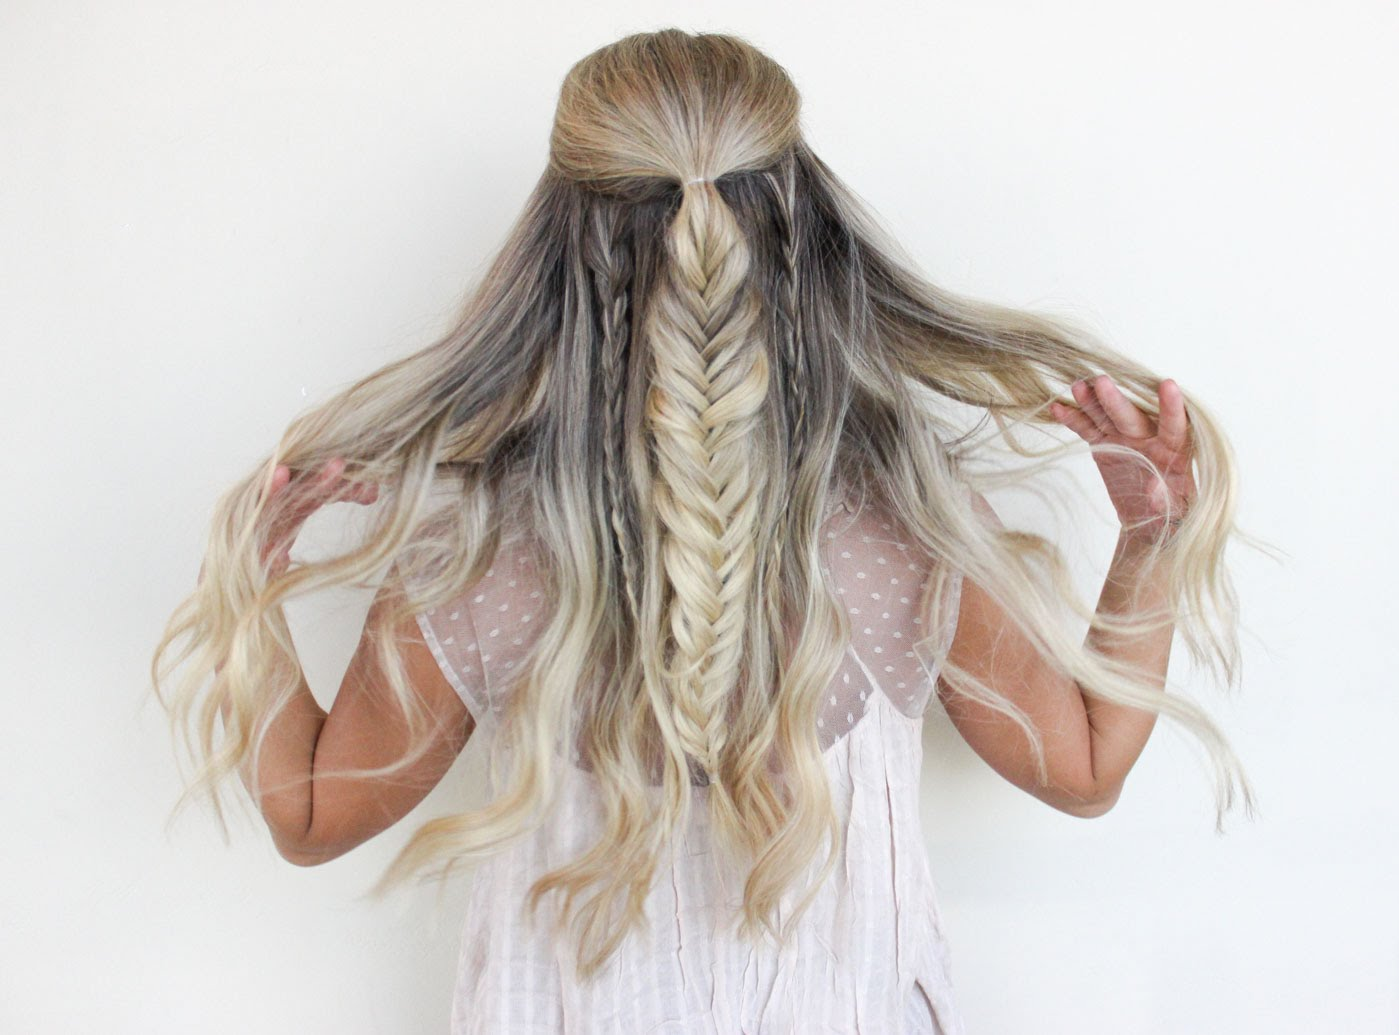 FABULOUS PARTY HAIR STYLES FOR ATTRACTIVE LADIES THROUGH HOLIDAYS 12